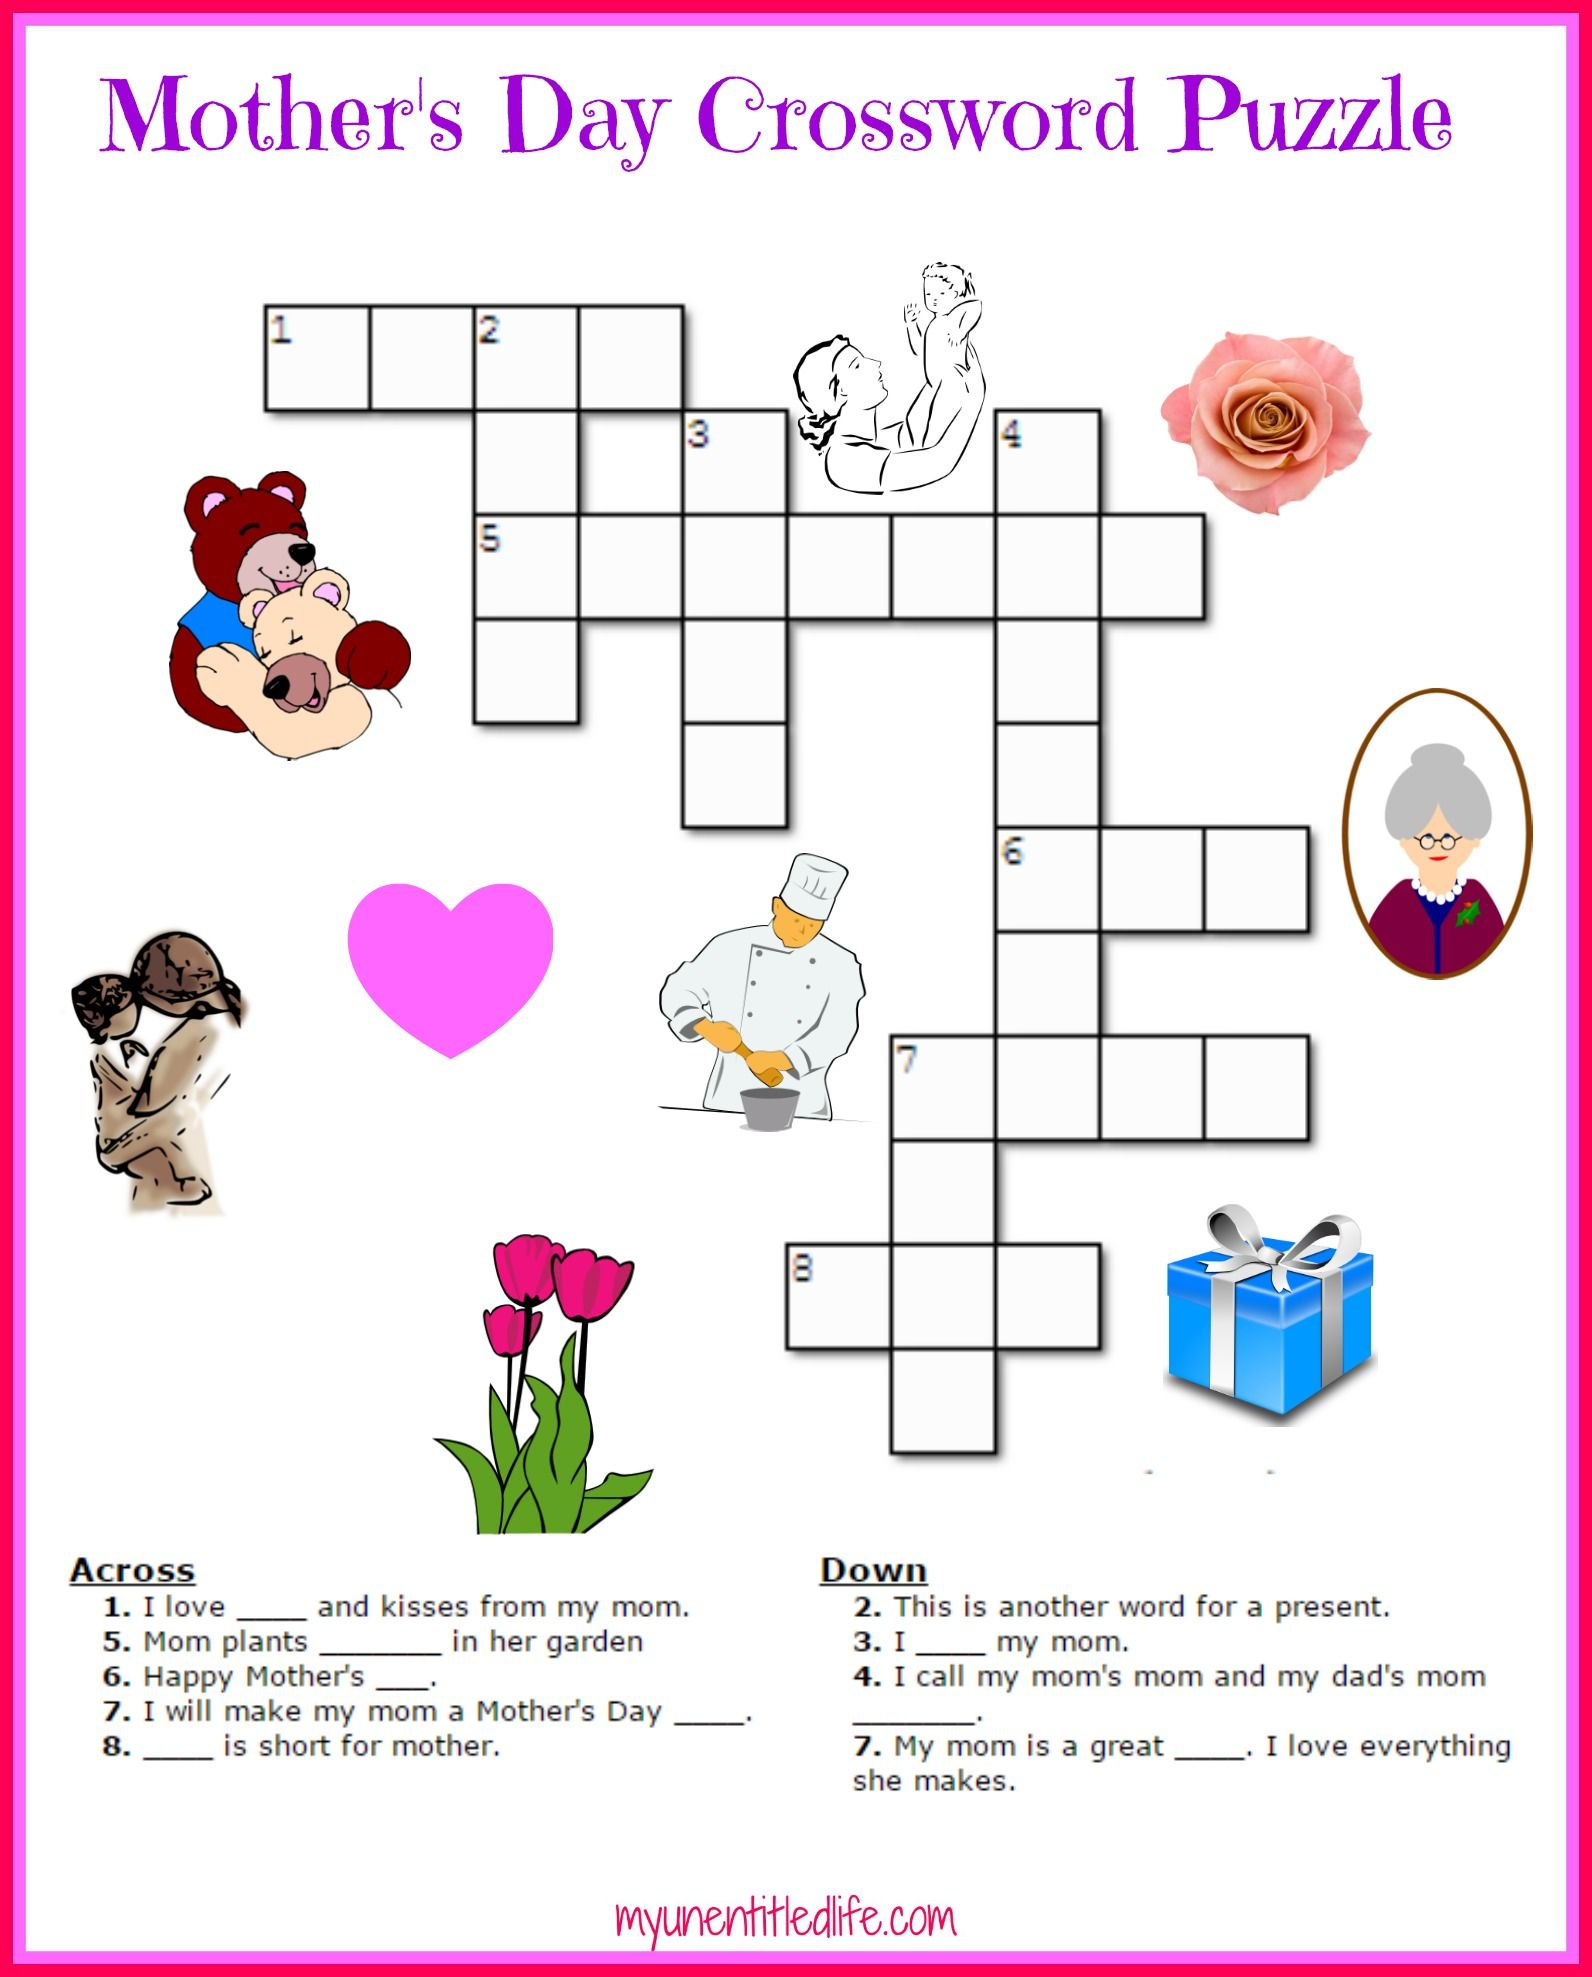 free mother s day crossword puzzle printable crafts for kids fathers day presents mother 39 s. Black Bedroom Furniture Sets. Home Design Ideas